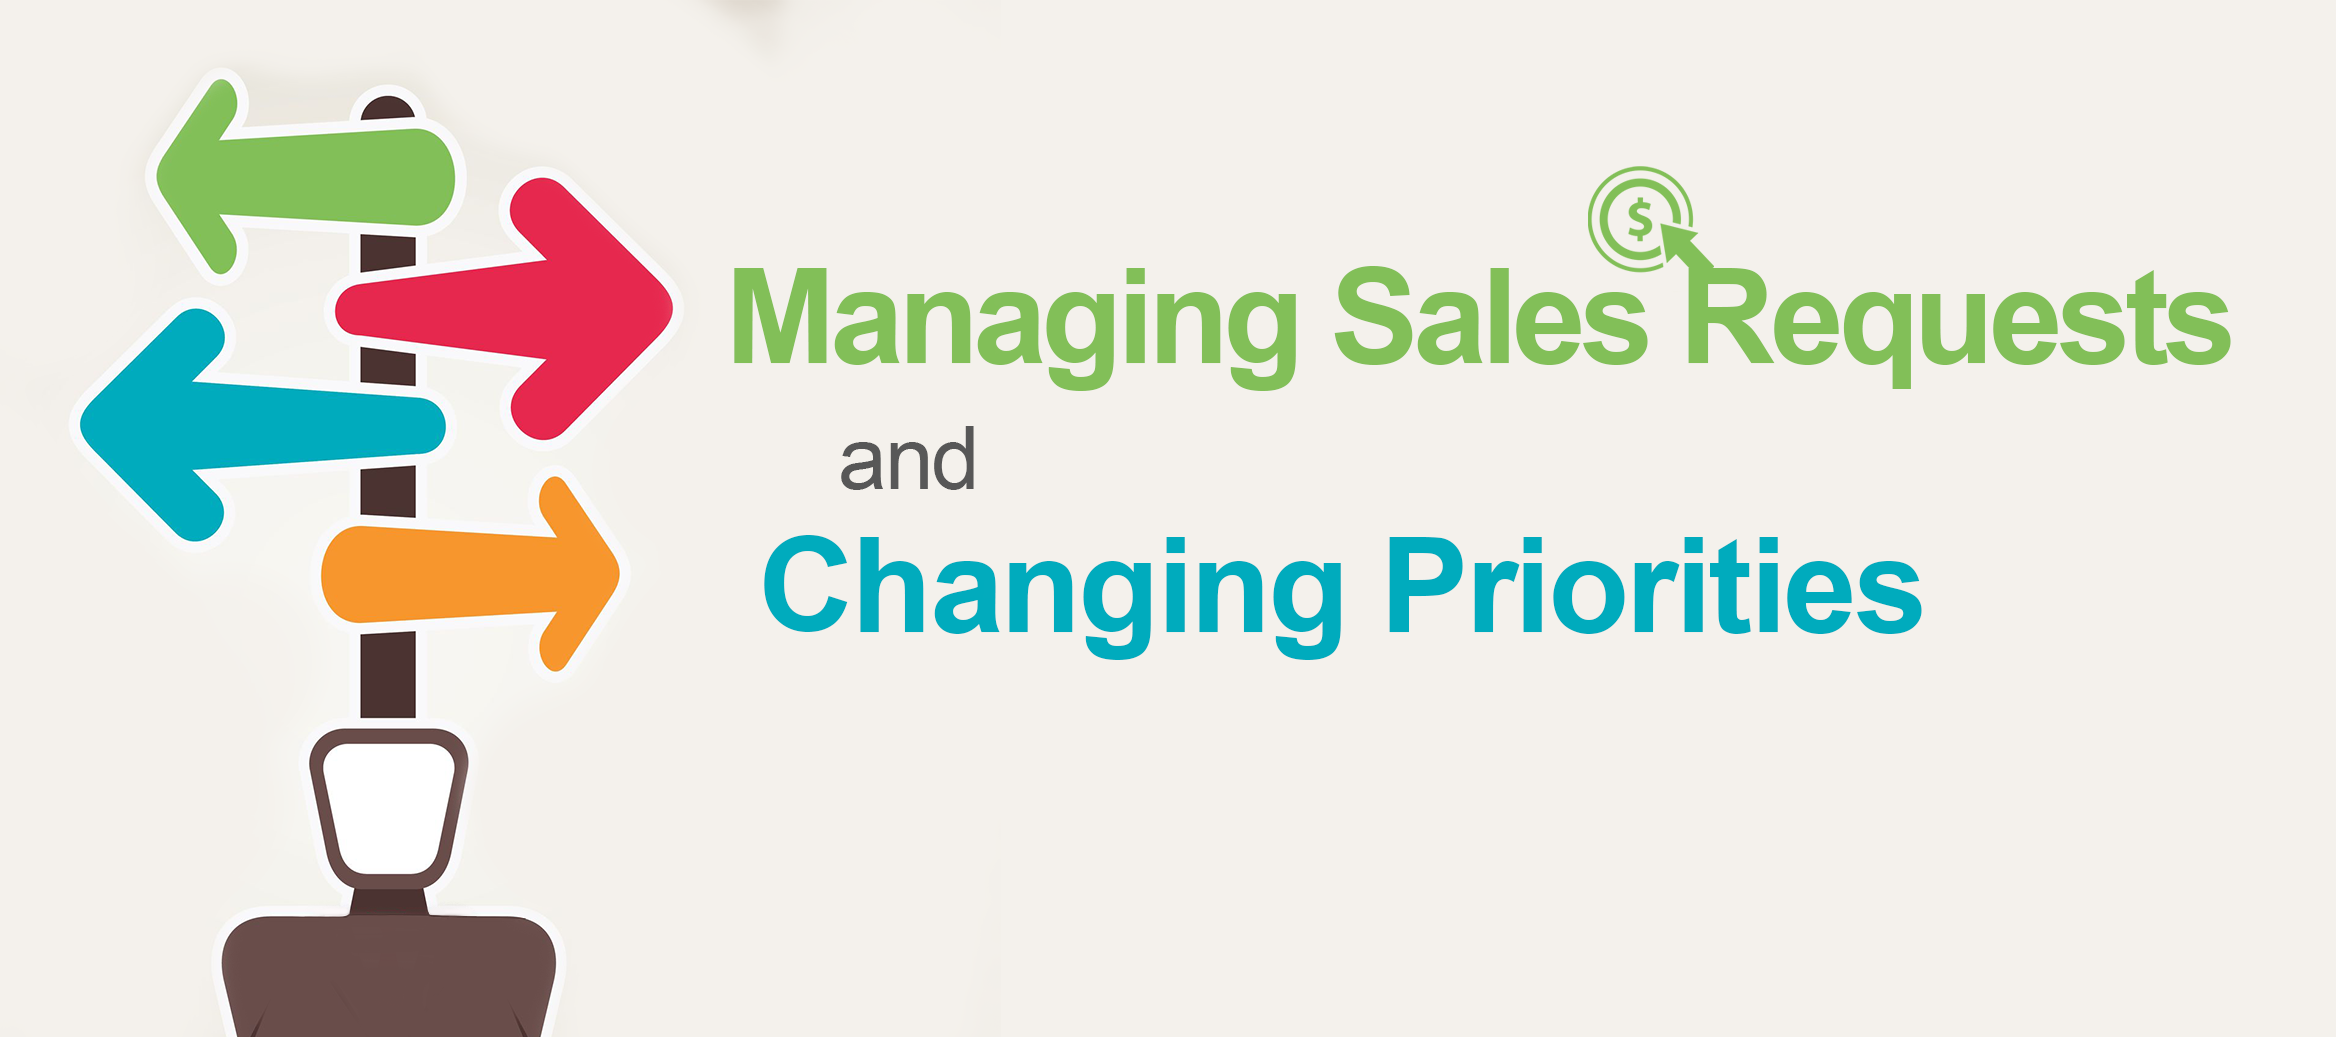 Managing Sales Requests and Changing Priorities